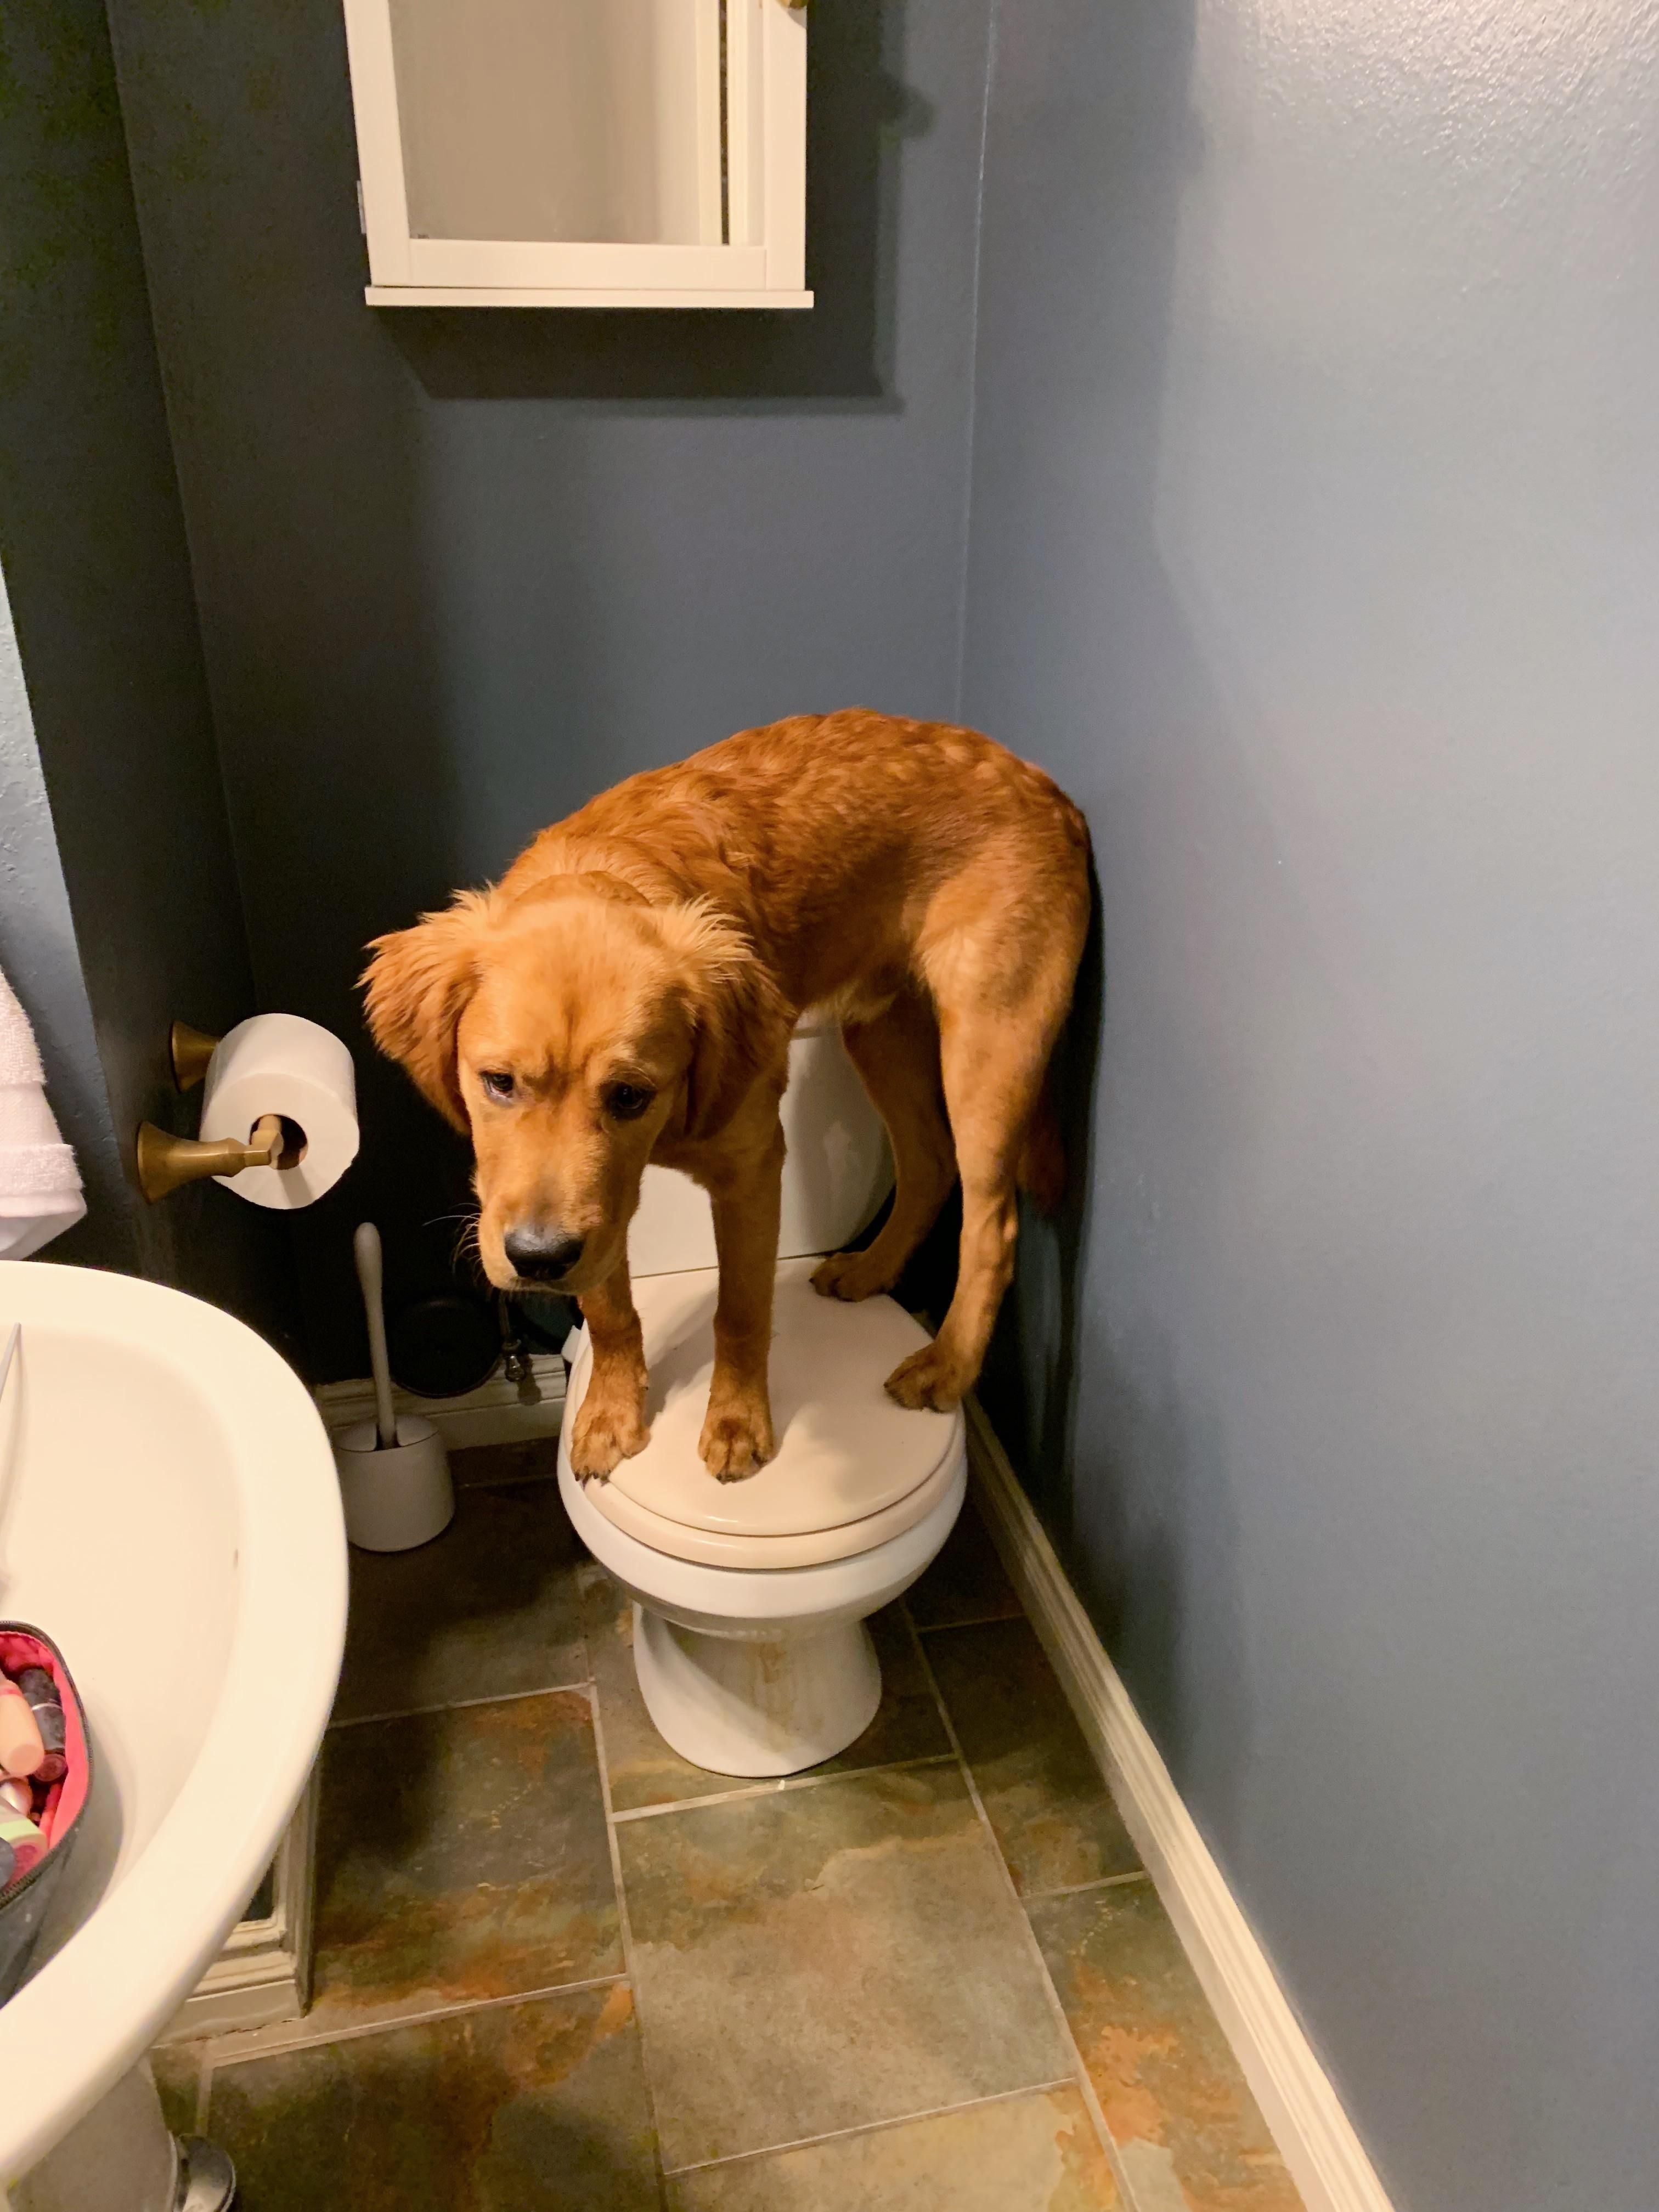 So Mom is this what you mean by potty training? Fluffy